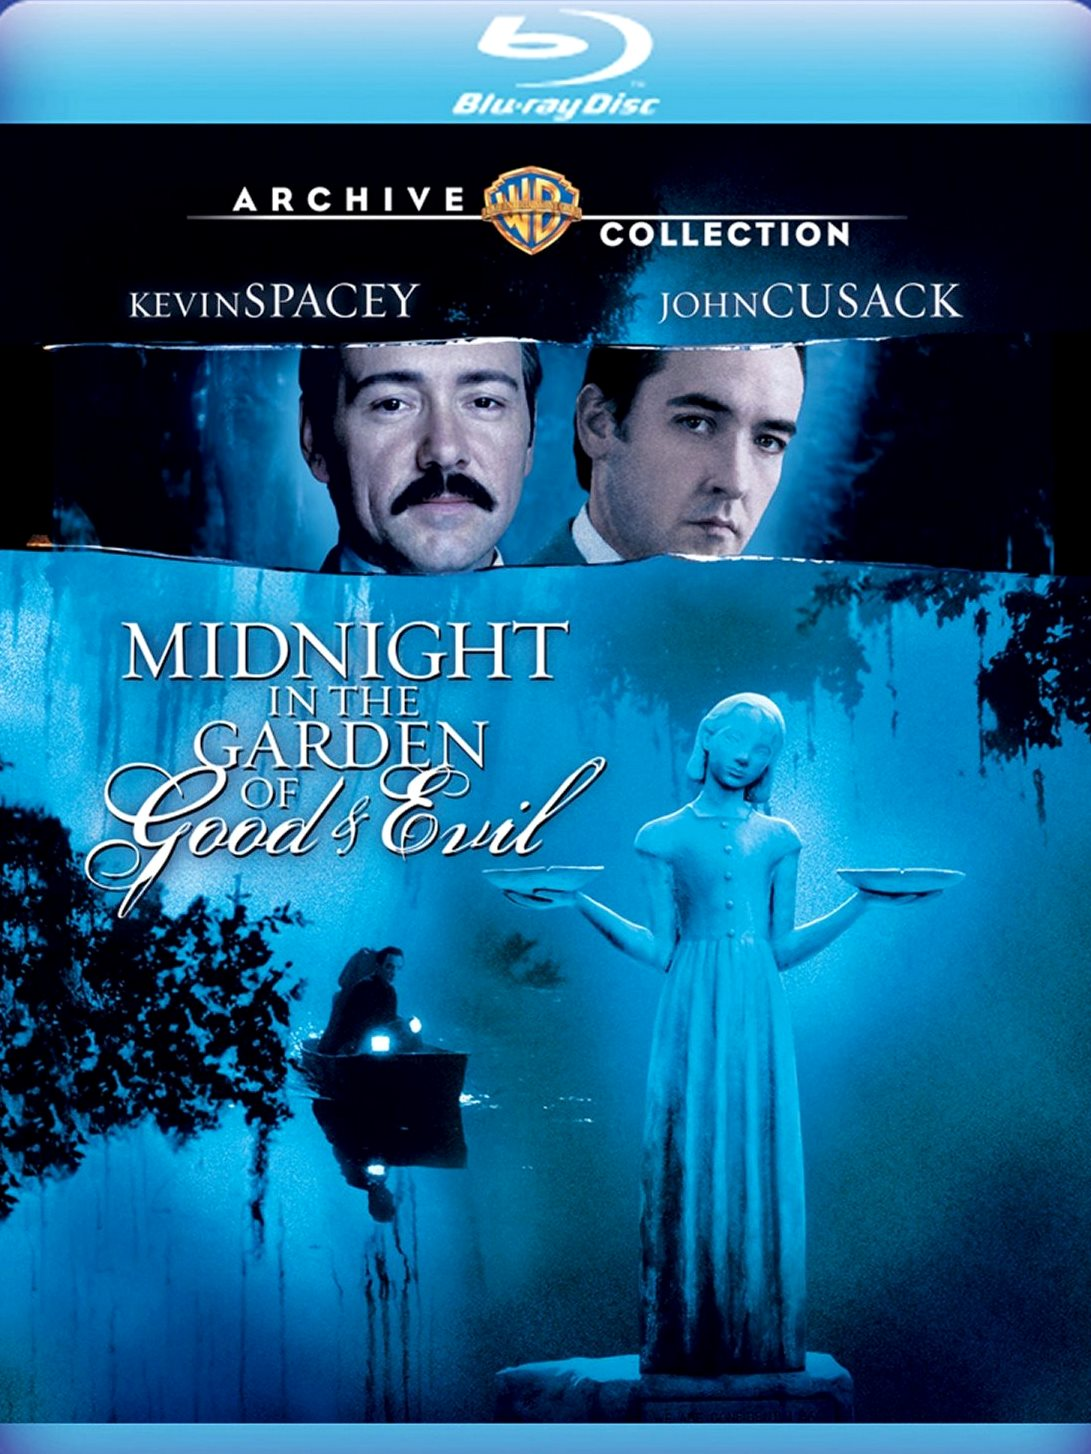 Nixpix dvd blu ray reviews midnight in the garden of good and evil blu ray wb 1997 In the garden of good and evil movie